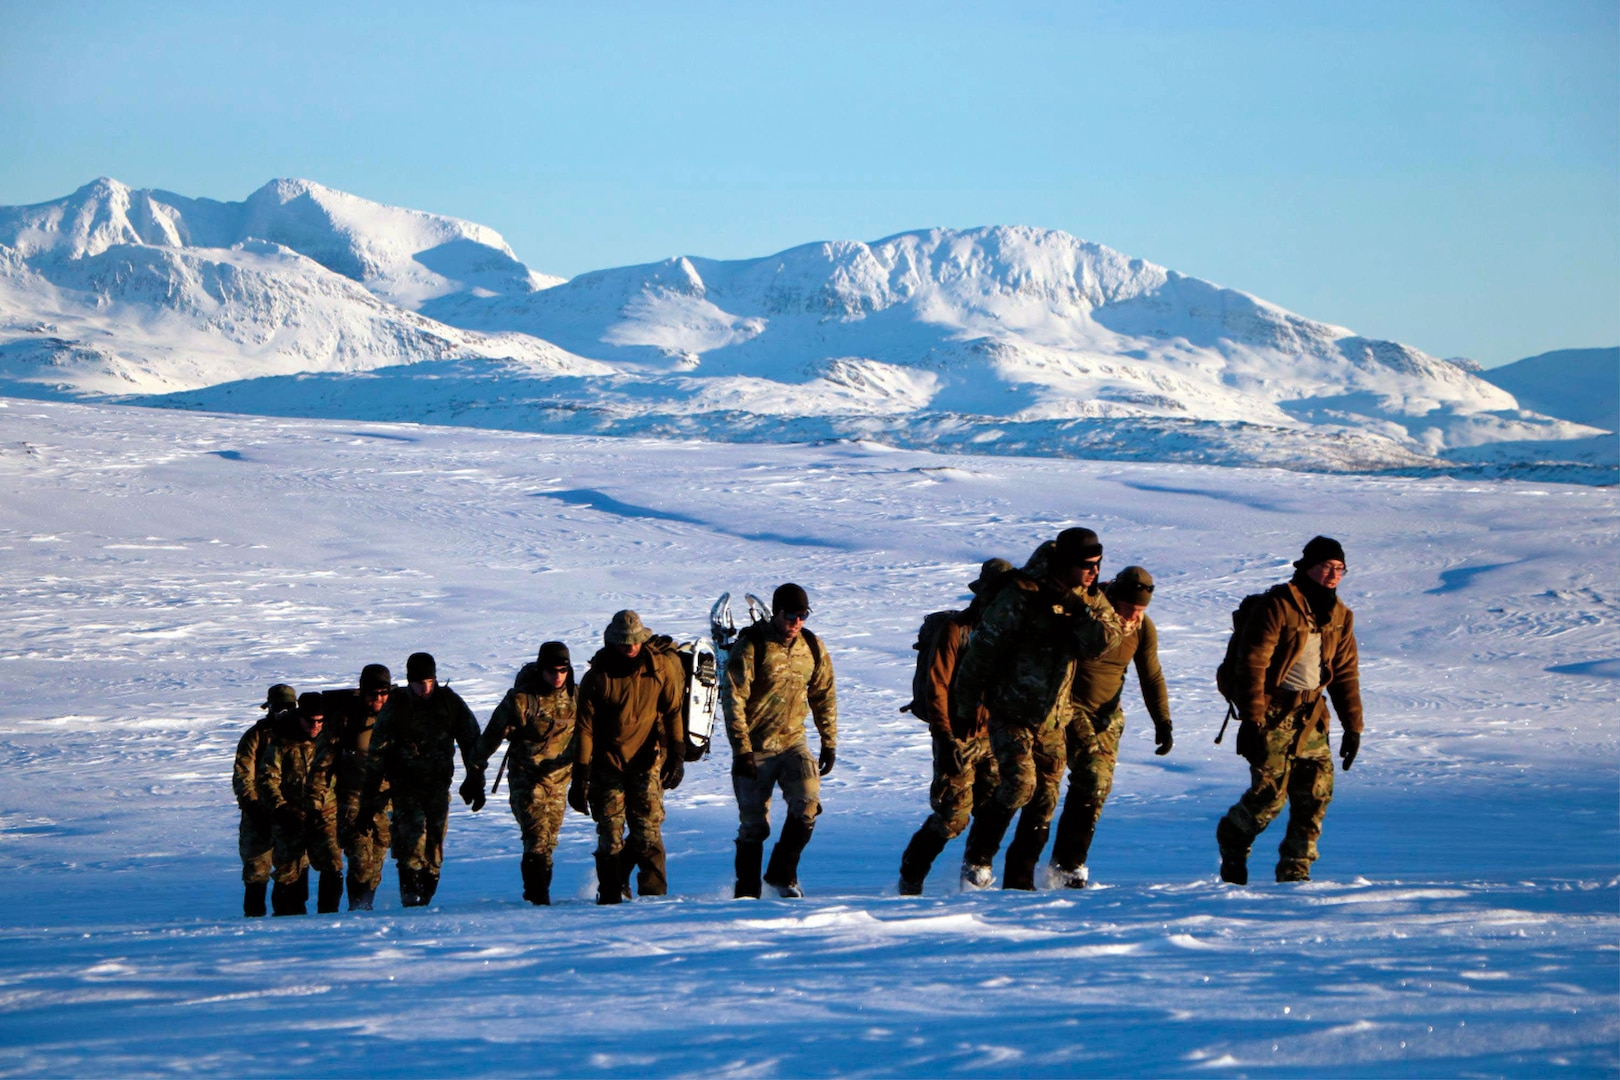 Explosive Ordnance Disposal Mobile Unit 8 and Norwegian army explosive ordnance disposal team participate in cold-weather endurance ruck march during Exercise Arctic Specialist 2017, Ramsund, Norway, February 5, 2017 (U.S. Navy/Seth Wartak)